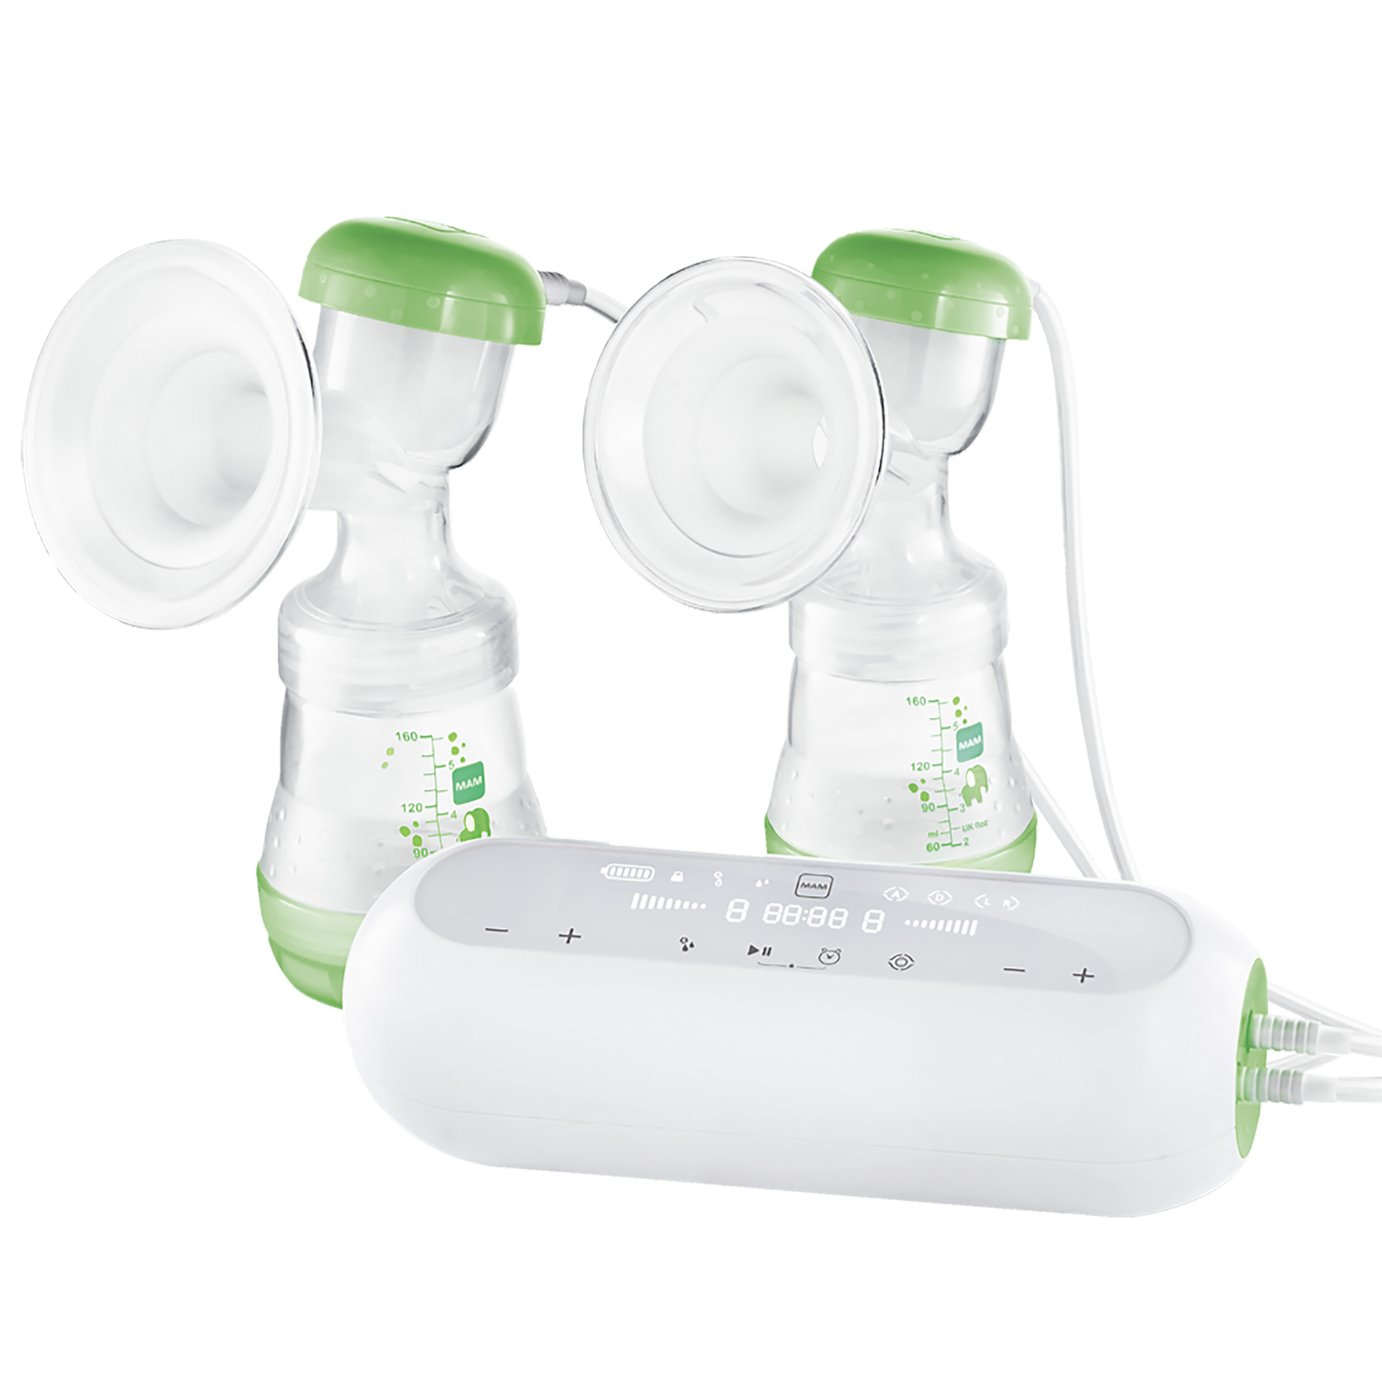 MAM 2-in-1 Double Electric Breast Pump